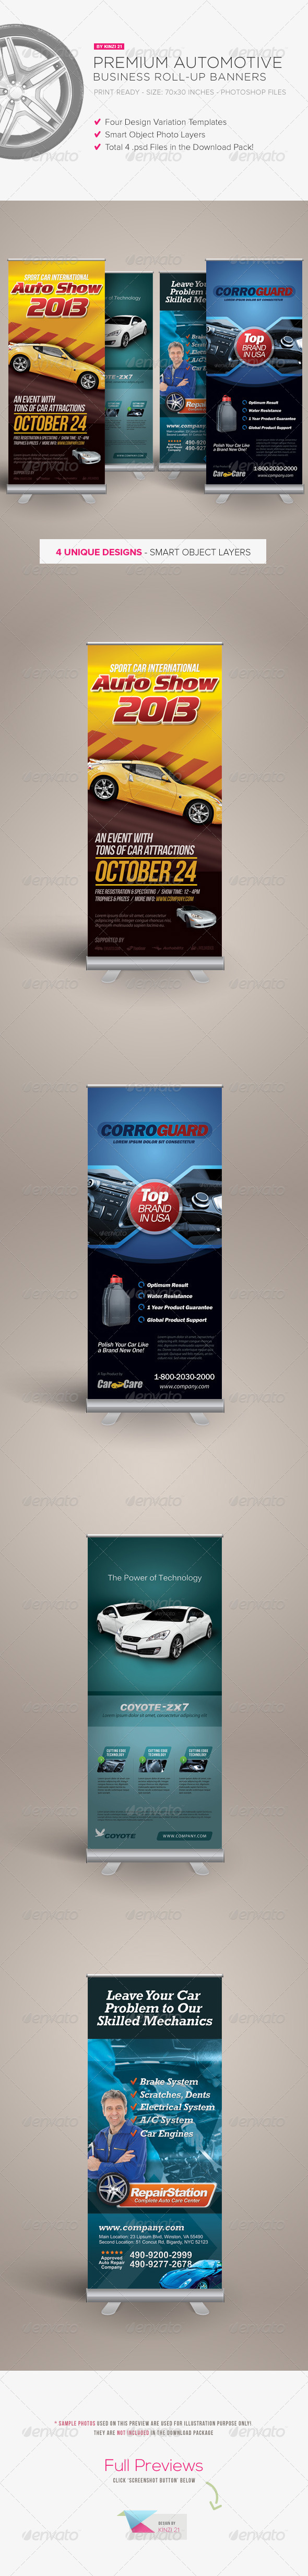 GraphicRiver Premium Automotive Business Roll-up Banners 5163674